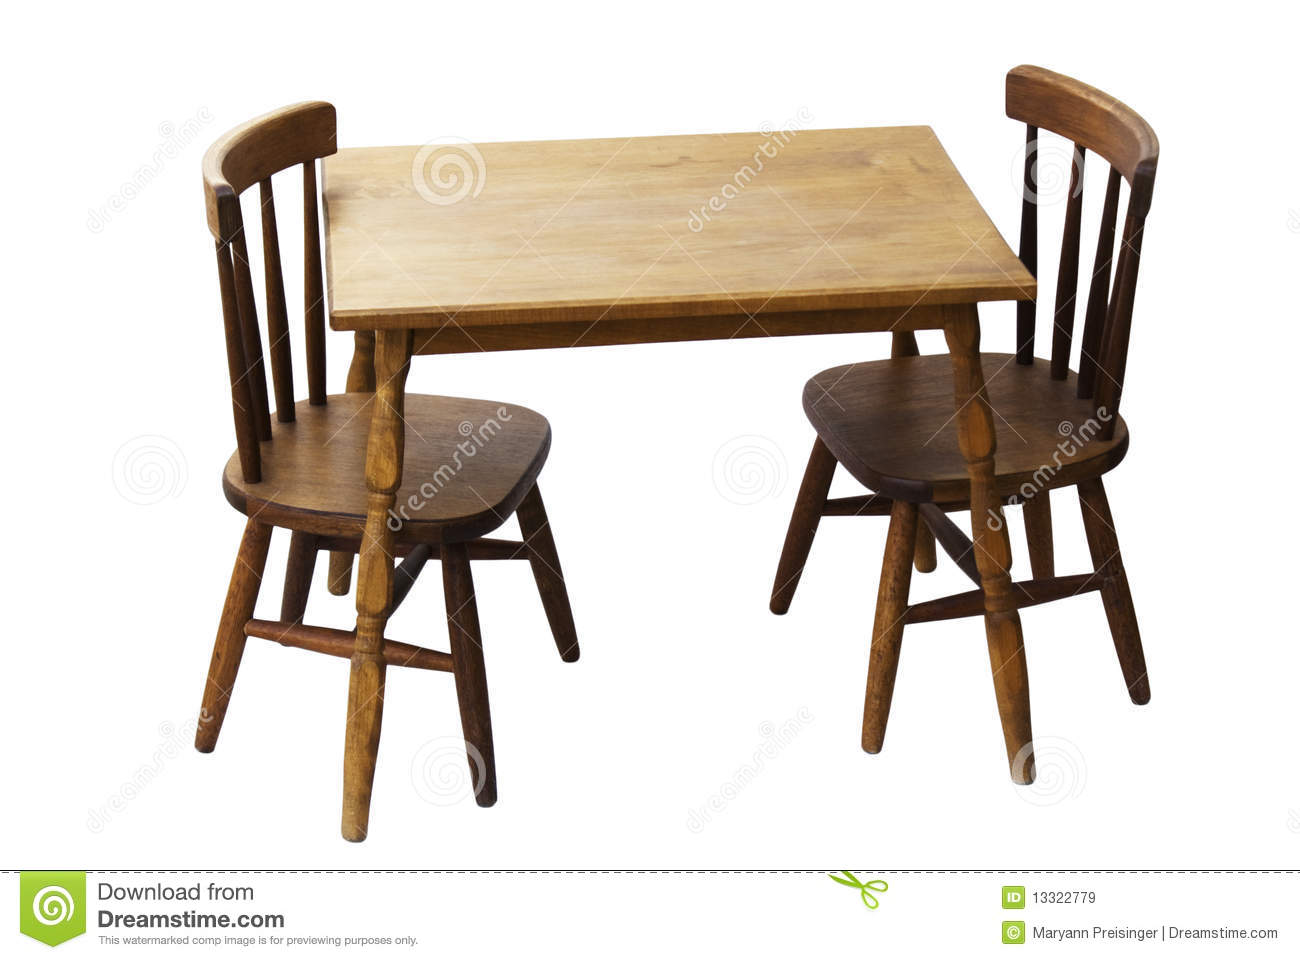 Kids Wood Table And Chairs Children 39s Child Wood Table And Chairs Isolated Royalty